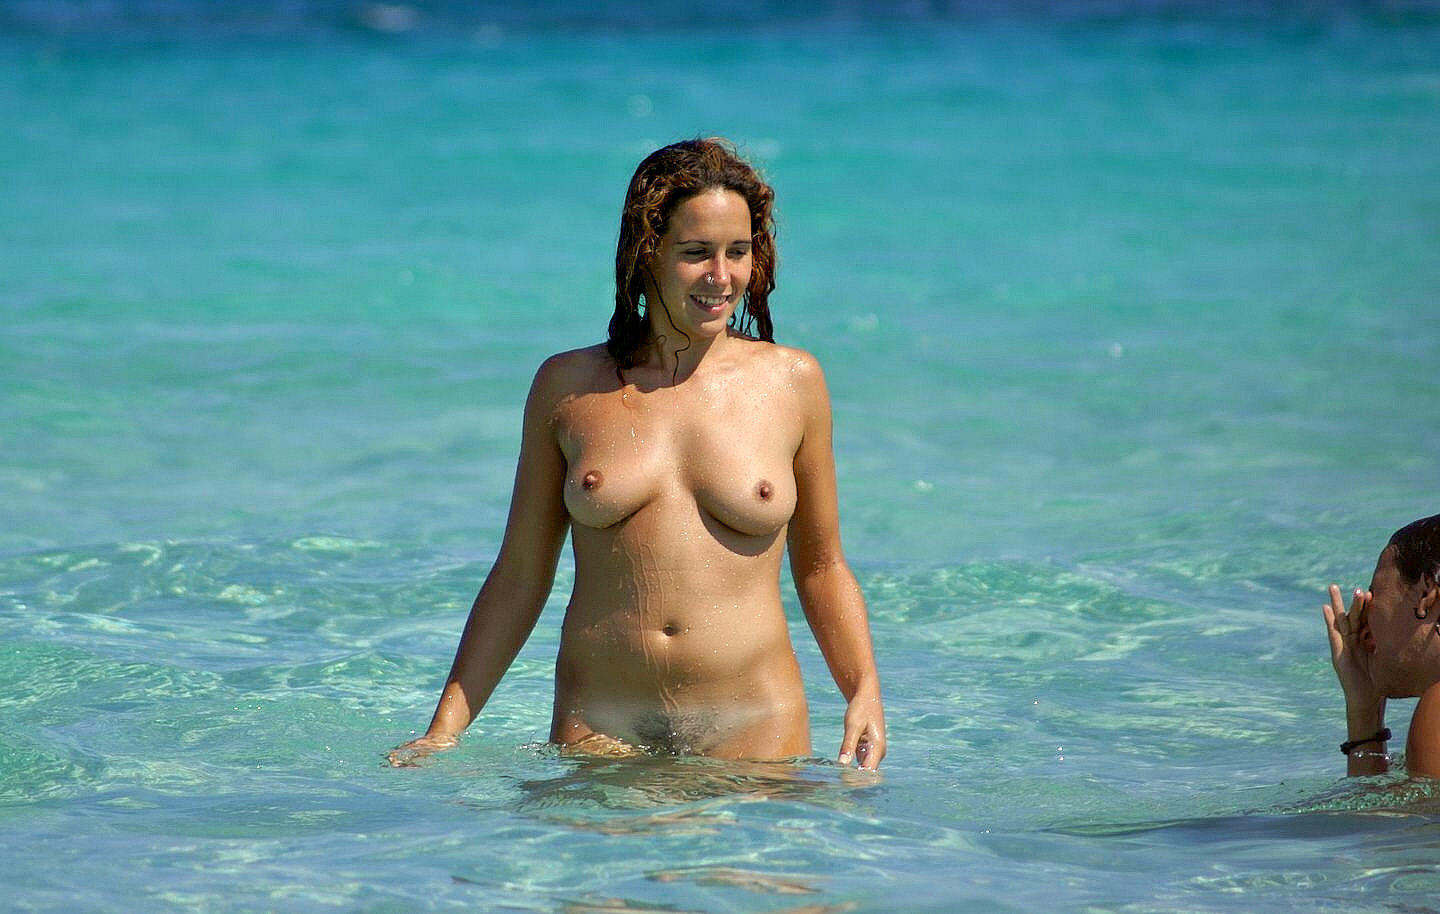 Girl naked spreading